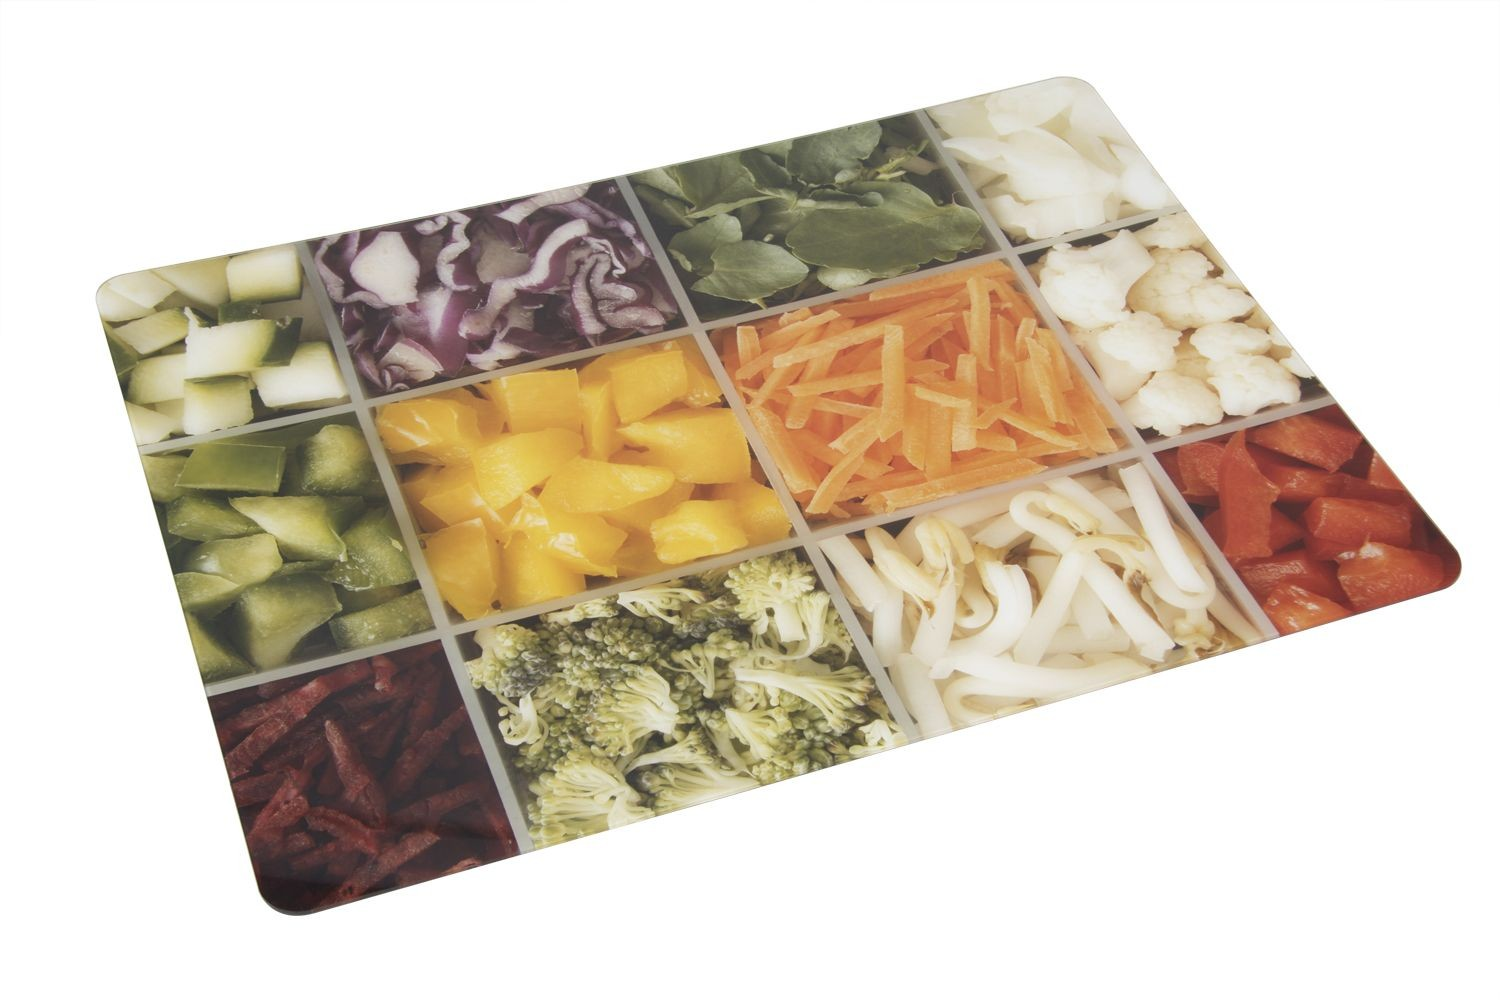 Bon Chef 50156CL-6 Acrylic City Lights Center Panel, Tossed Salads and Assorted Vegetables